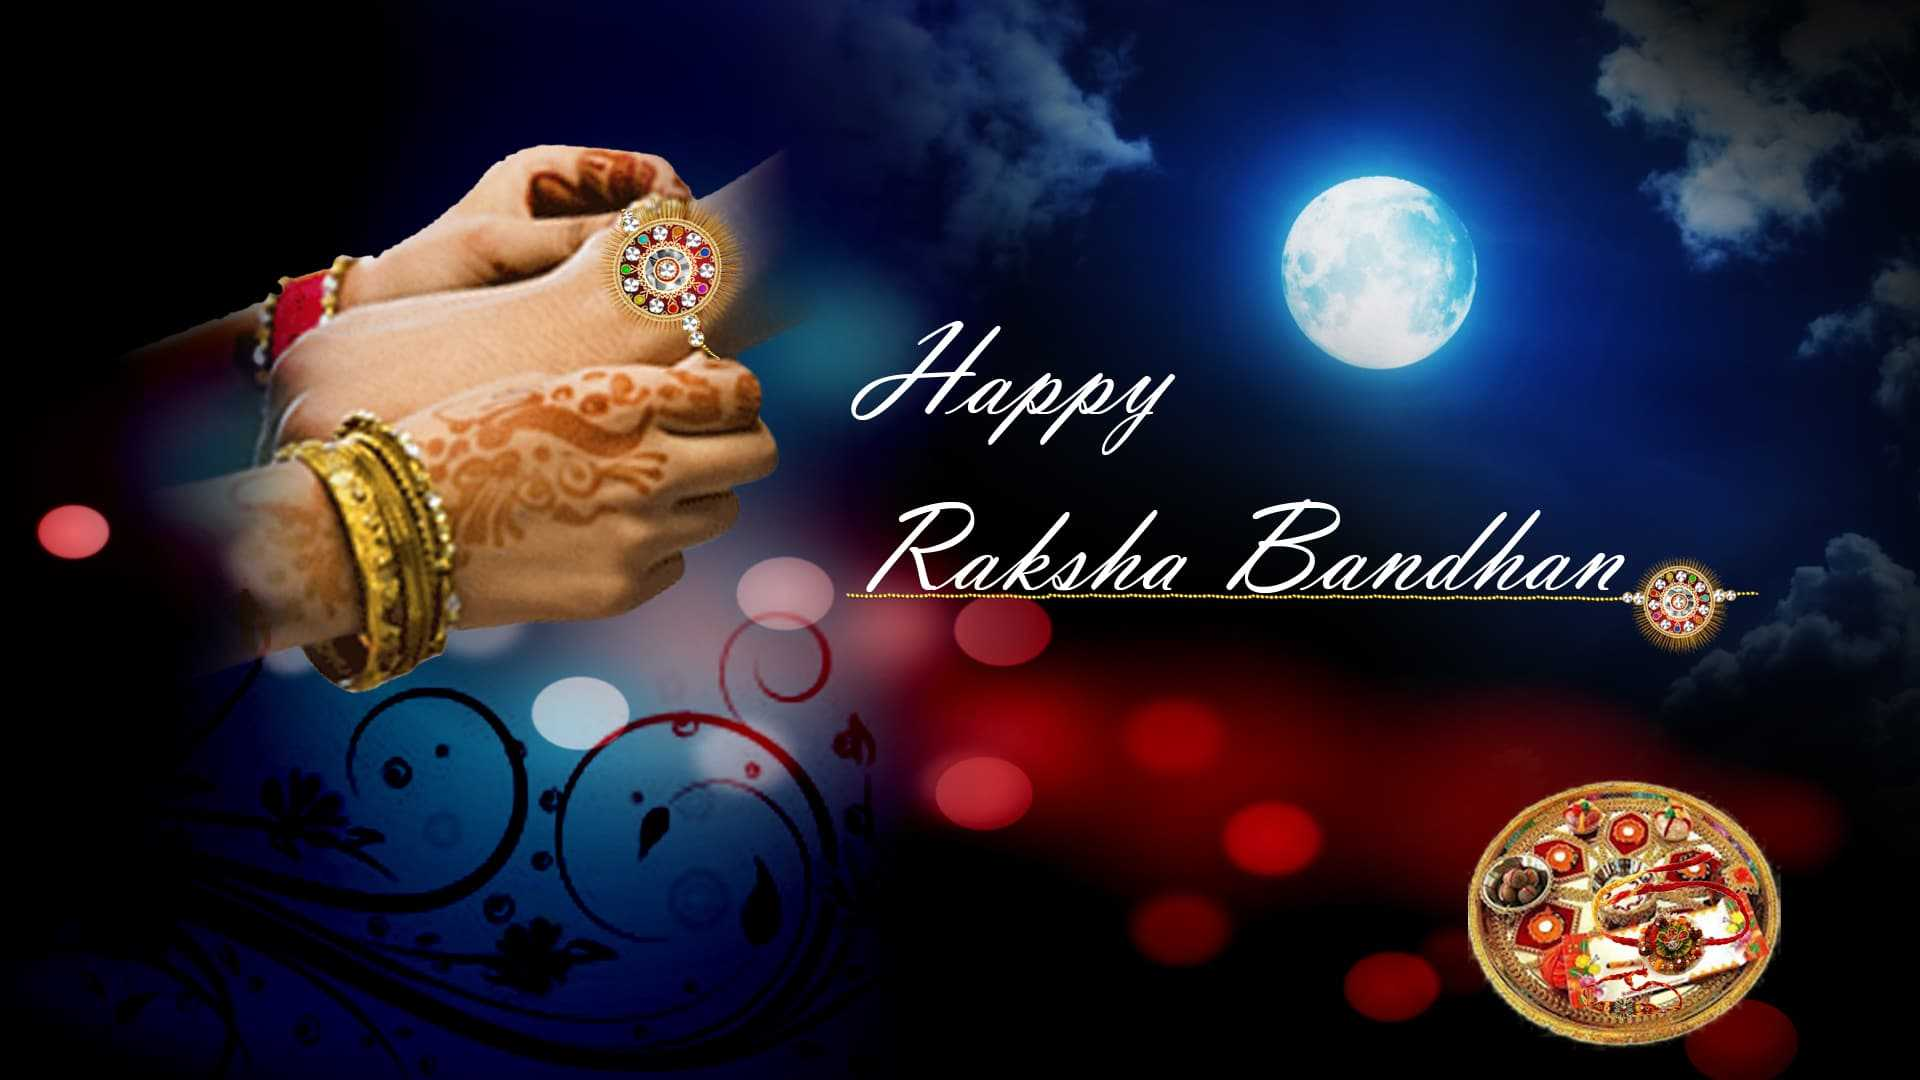 raksha bandhan hd images free download